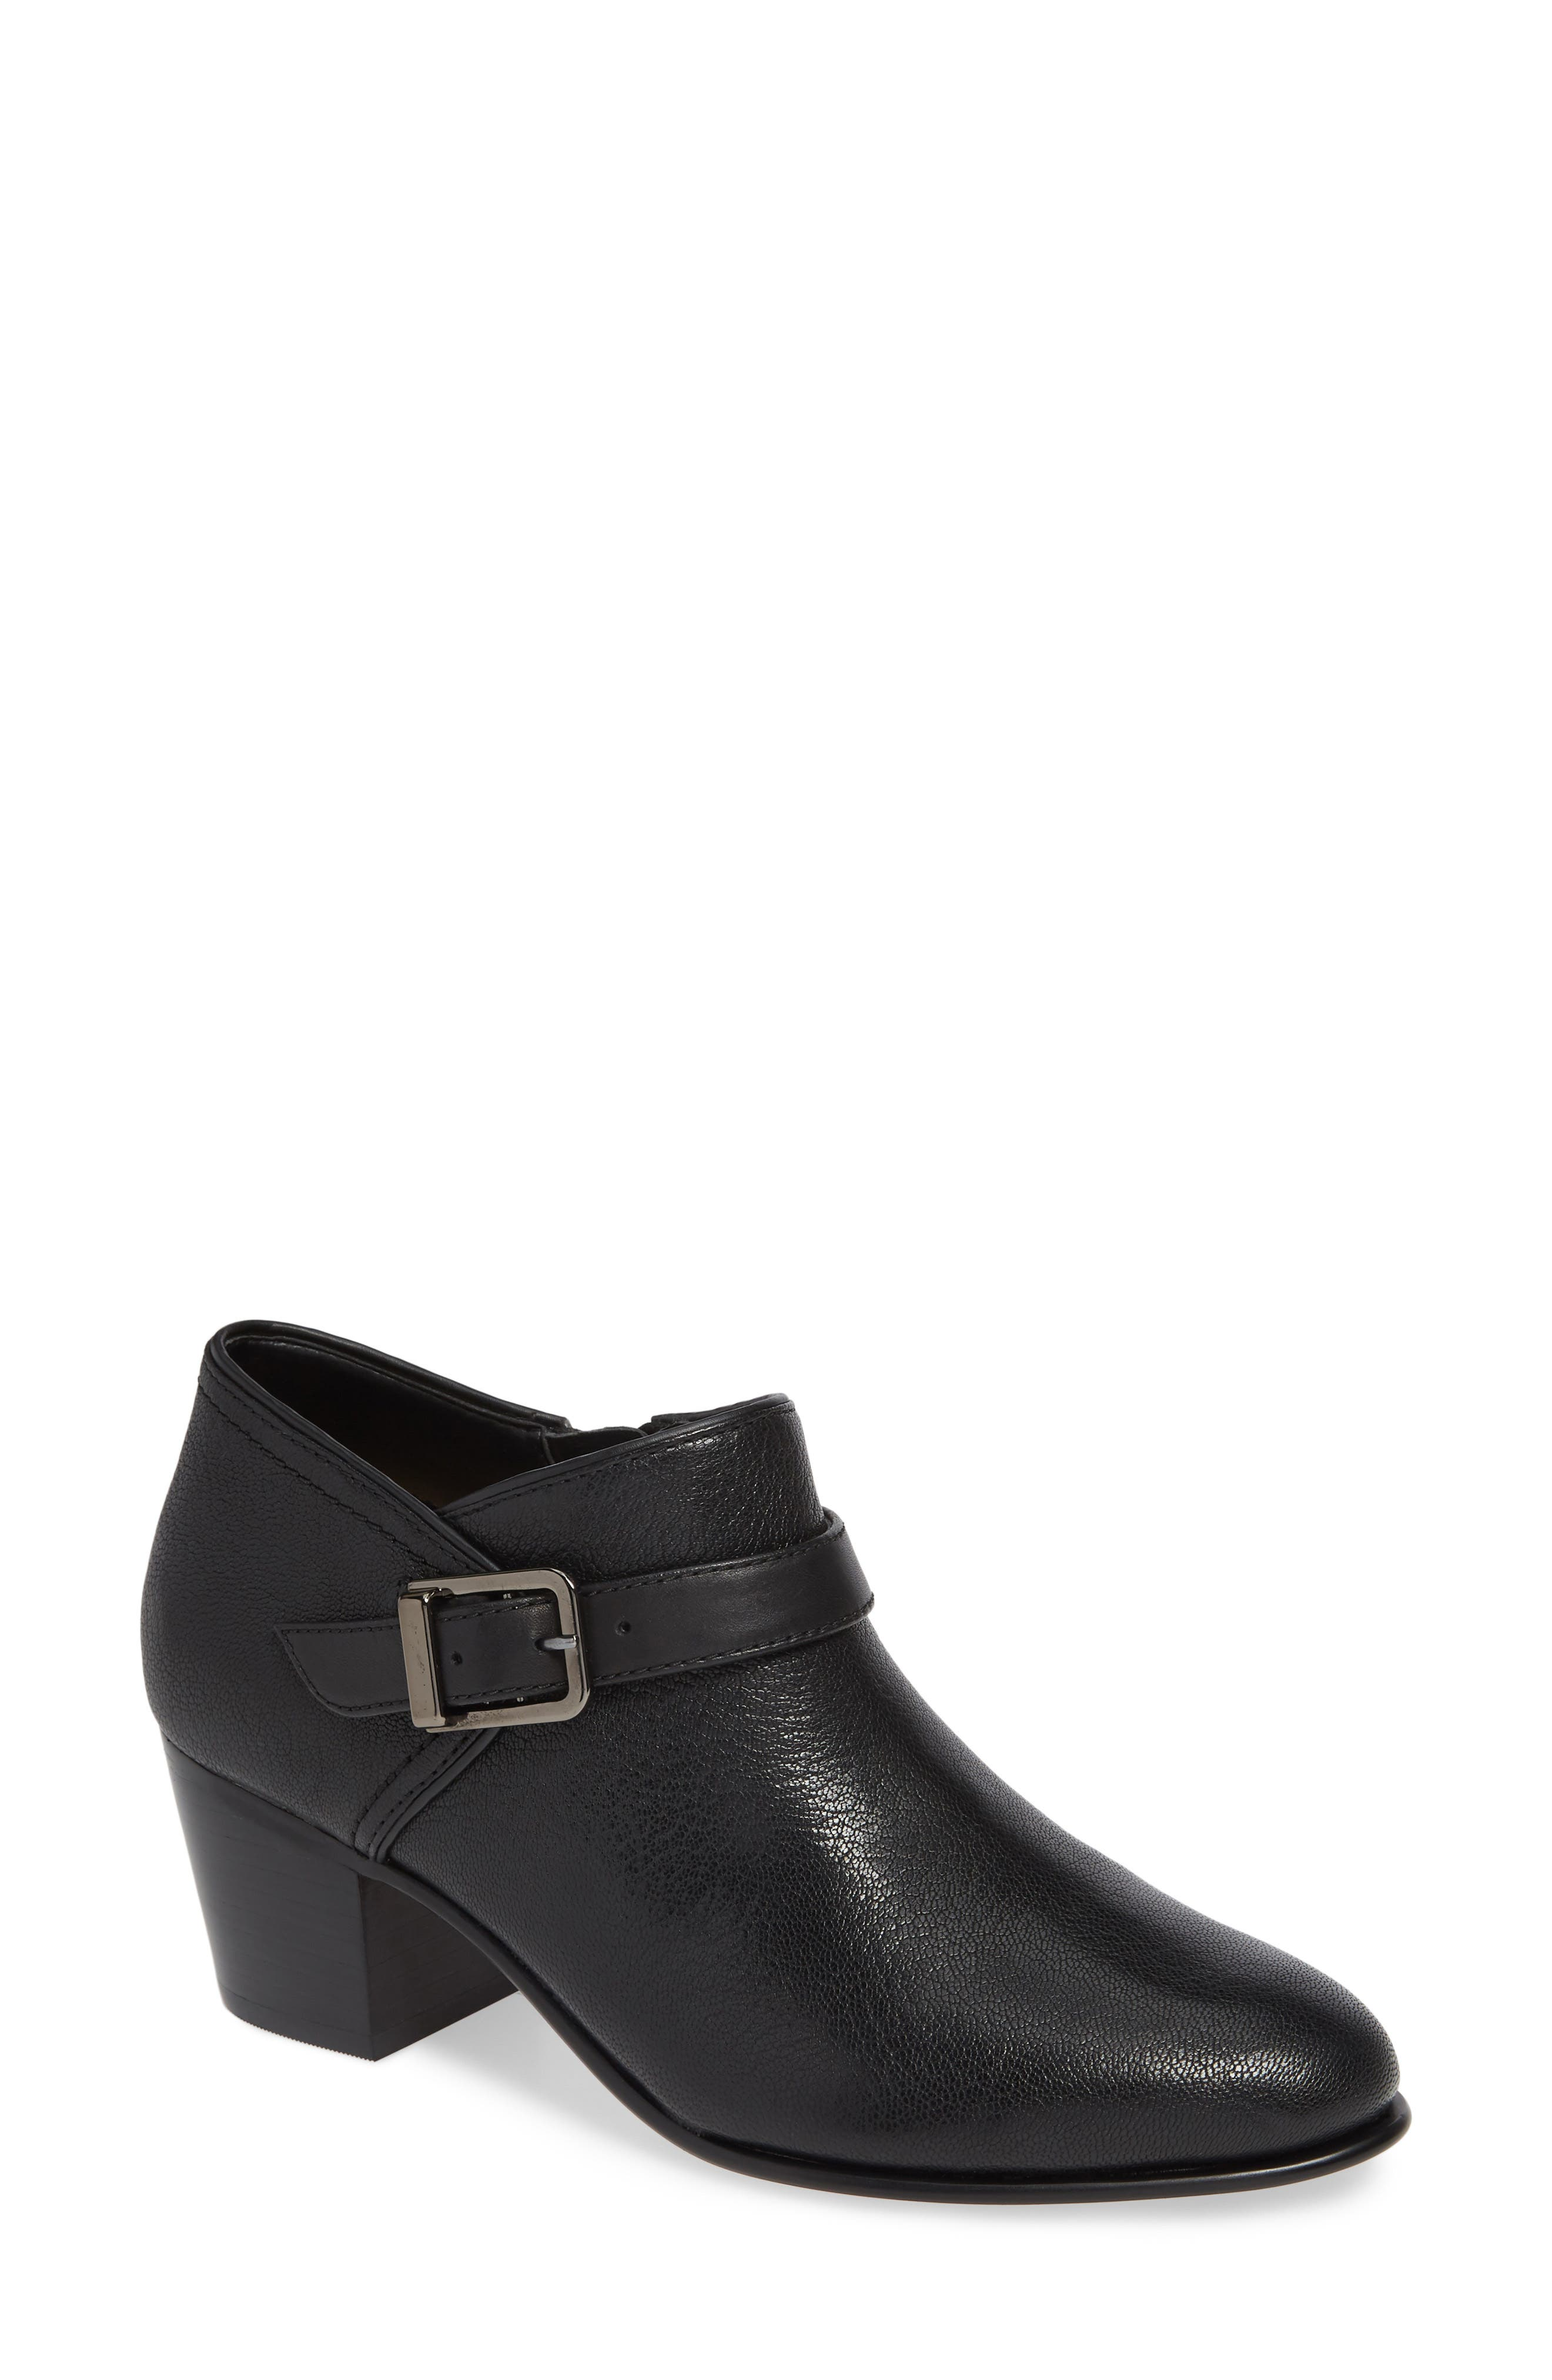 CLARKS<SUP>®</SUP>, Maypearl Milla Bootie, Main thumbnail 1, color, BLACK TUMBLED LEATHER